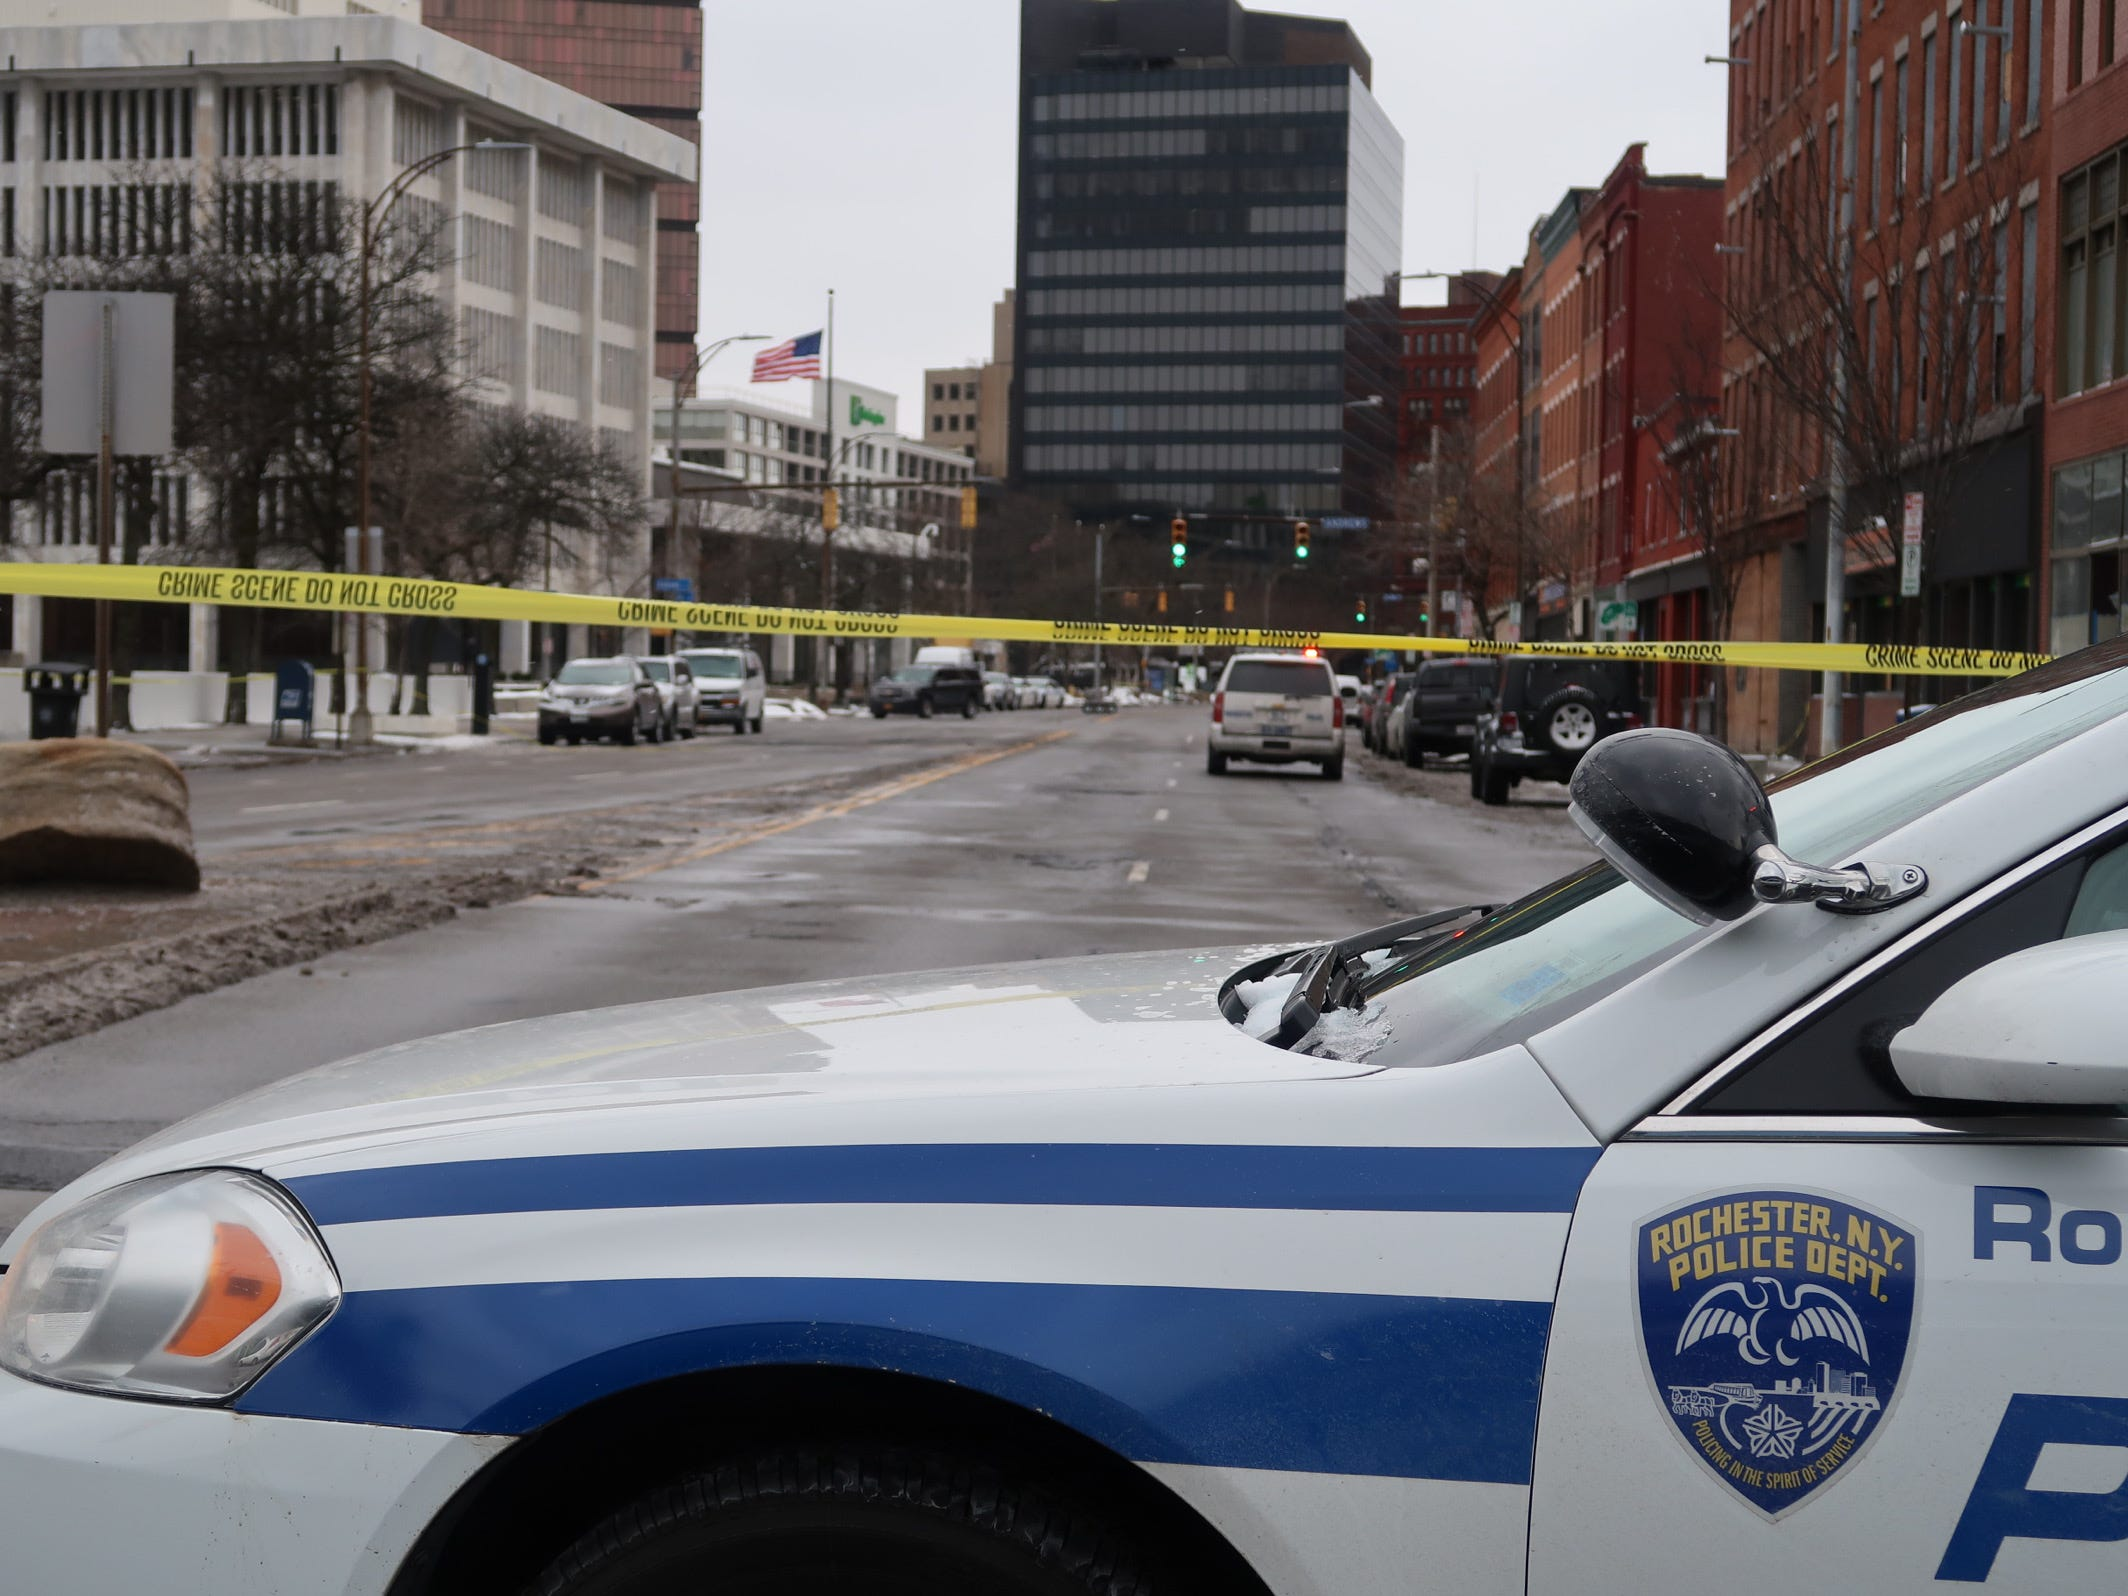 Rochester police have closed roads near the federal building on State Street on Feb. 27, 2020.